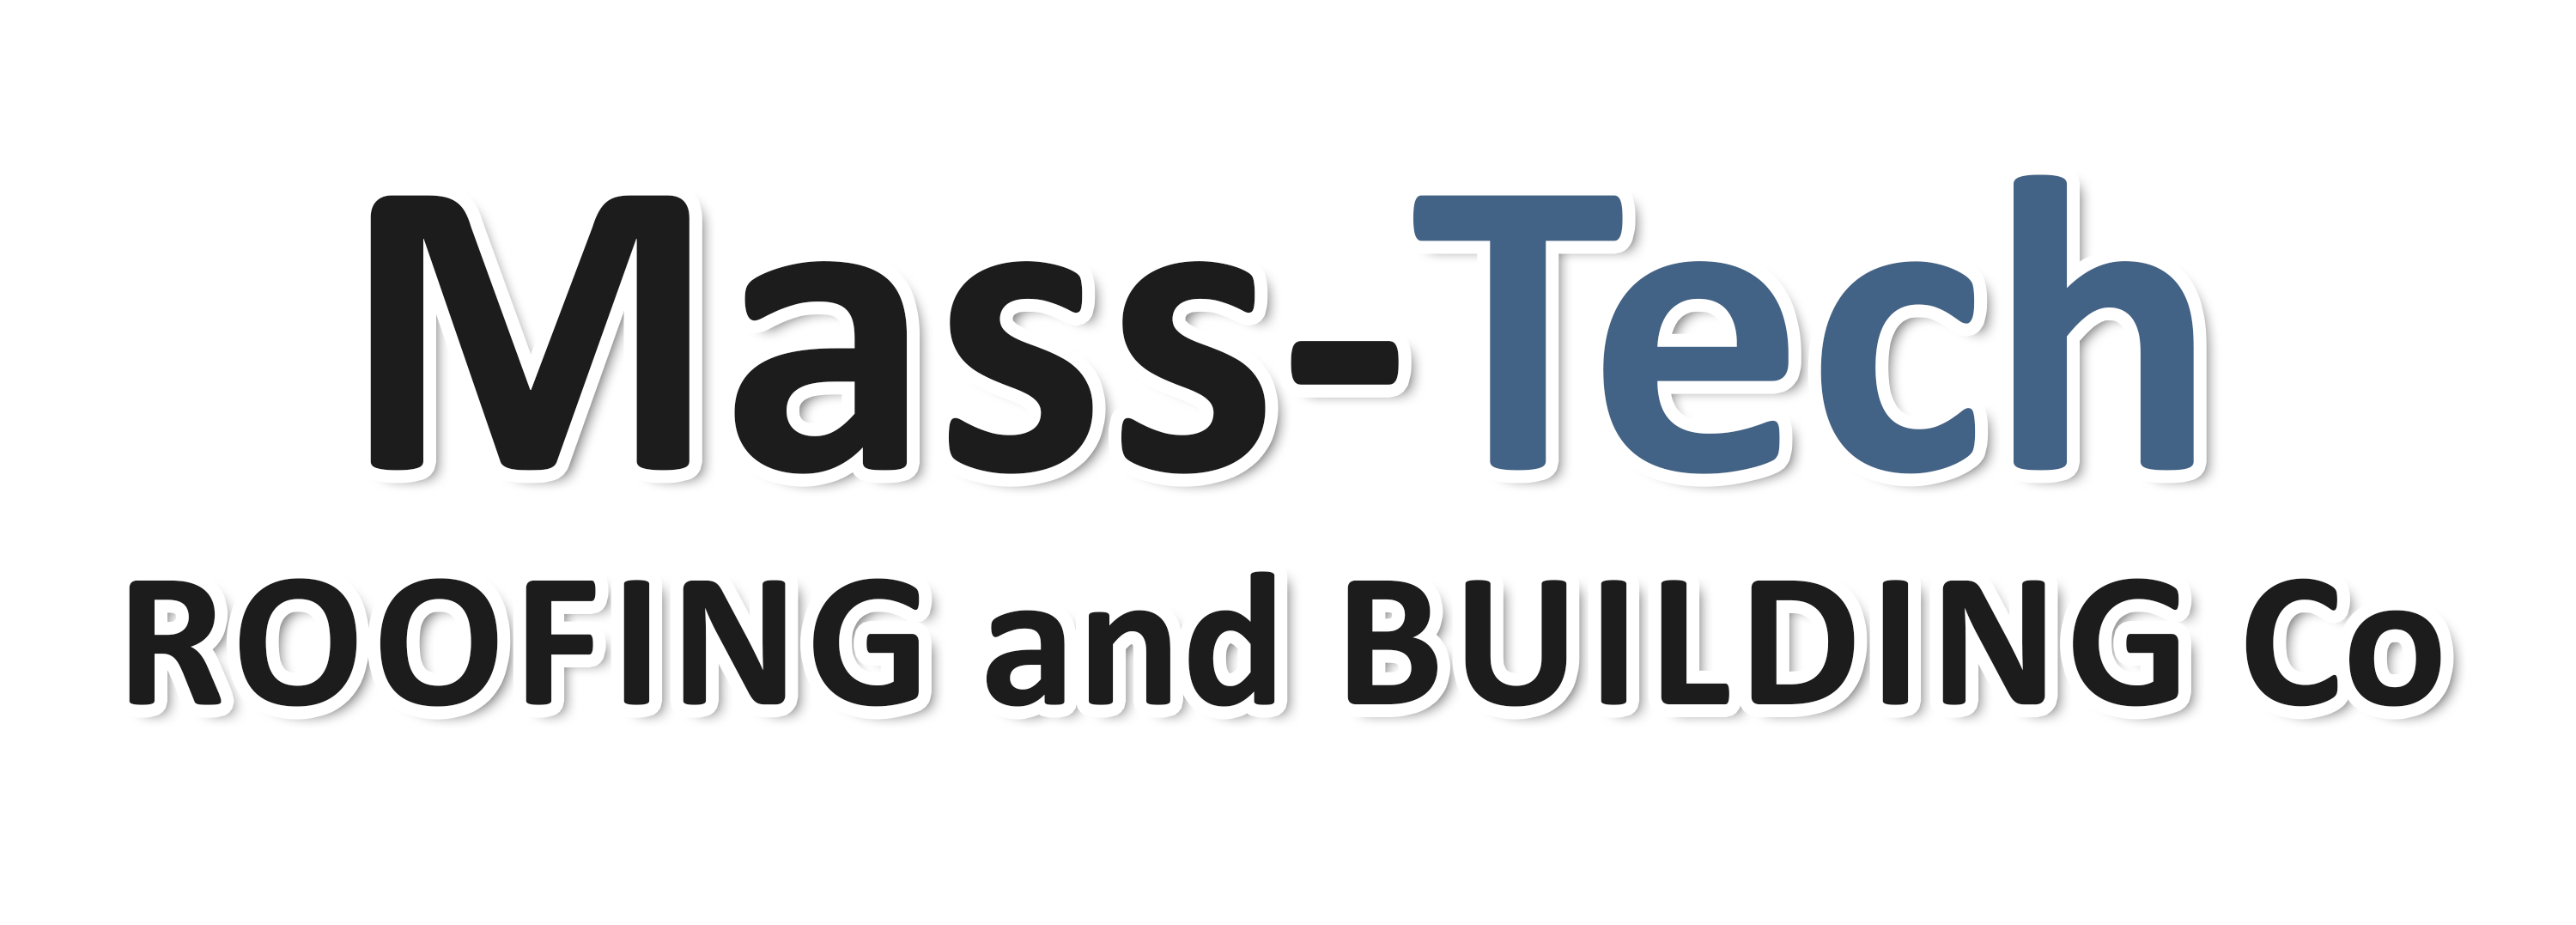 Mass-Tech Roofing and Building Co.